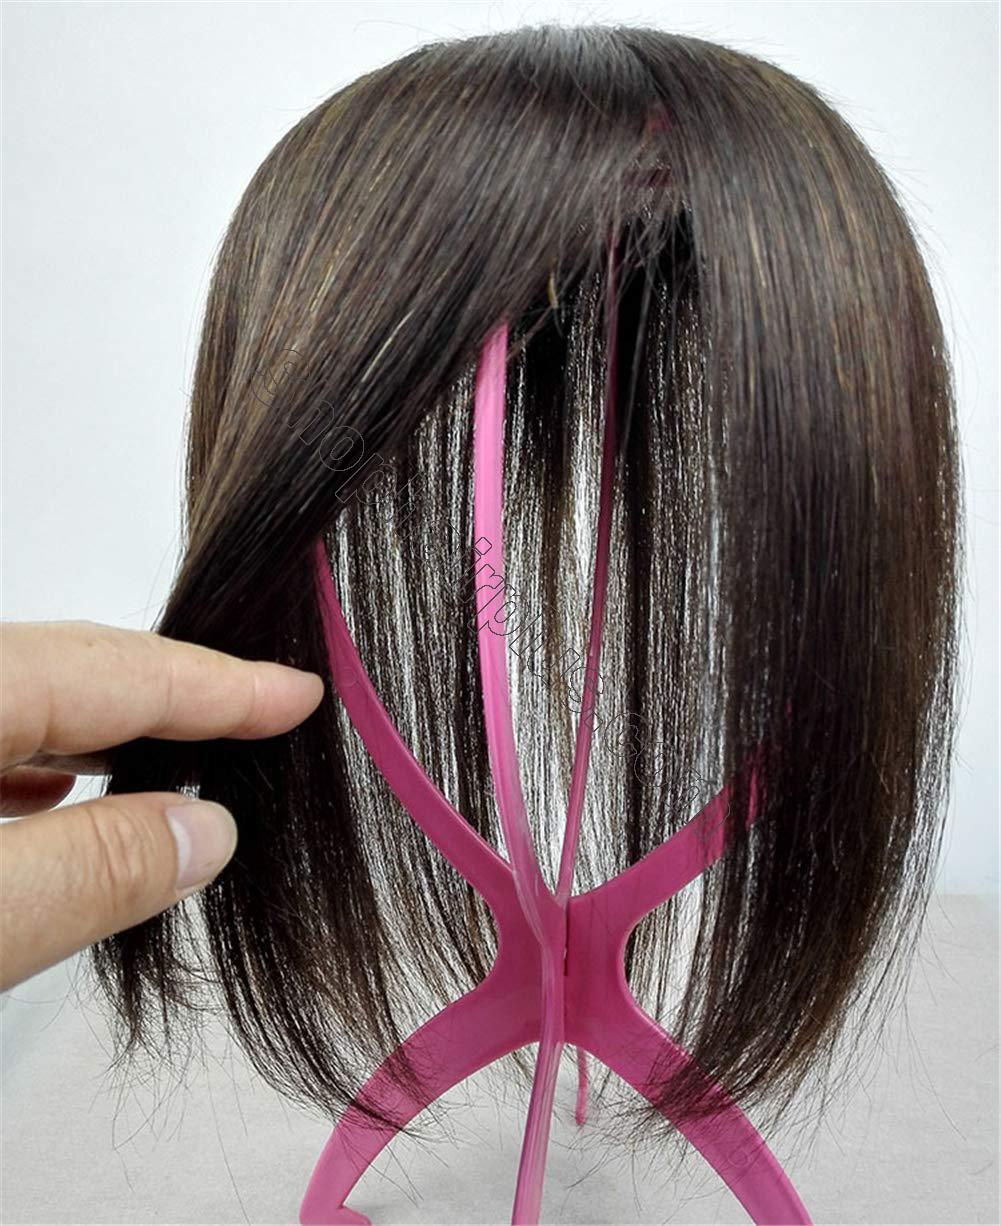 """Instantly Human Hair Topper Wiglets Hairpieces for Thinning Hair, 5"""" x 5.5"""" Mono Crown Topper with Clips for Women 5"""